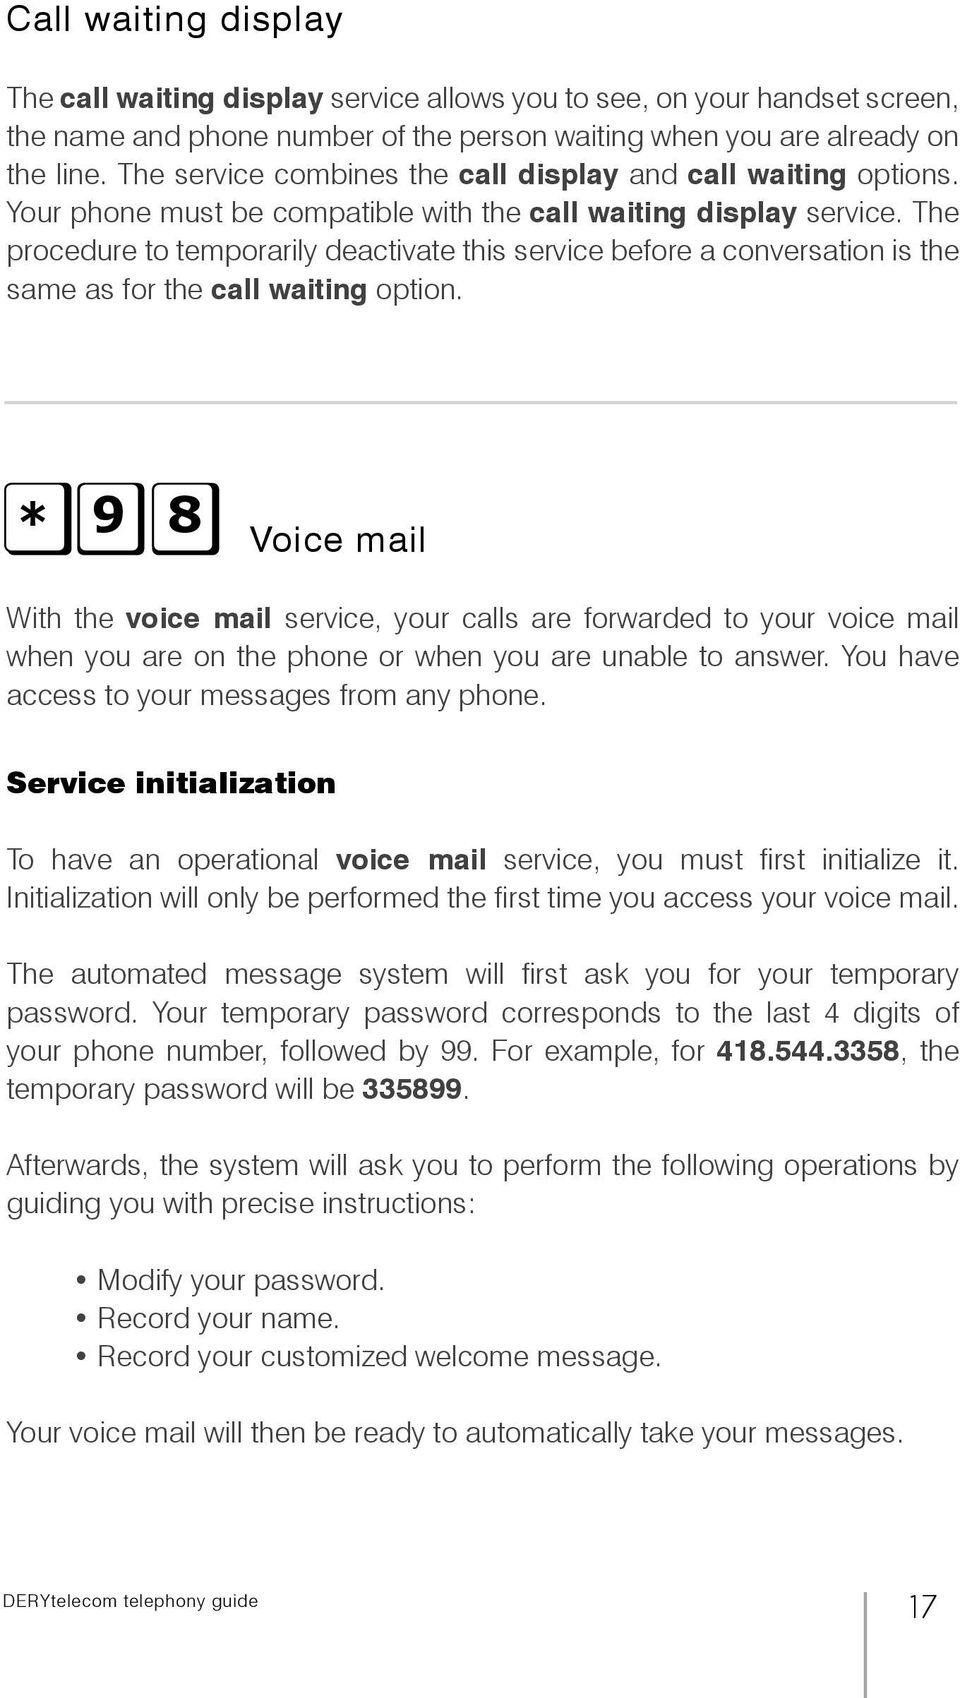 The procedure to temporarily deactivate this service before a conversation is the same as for the call waiting option.